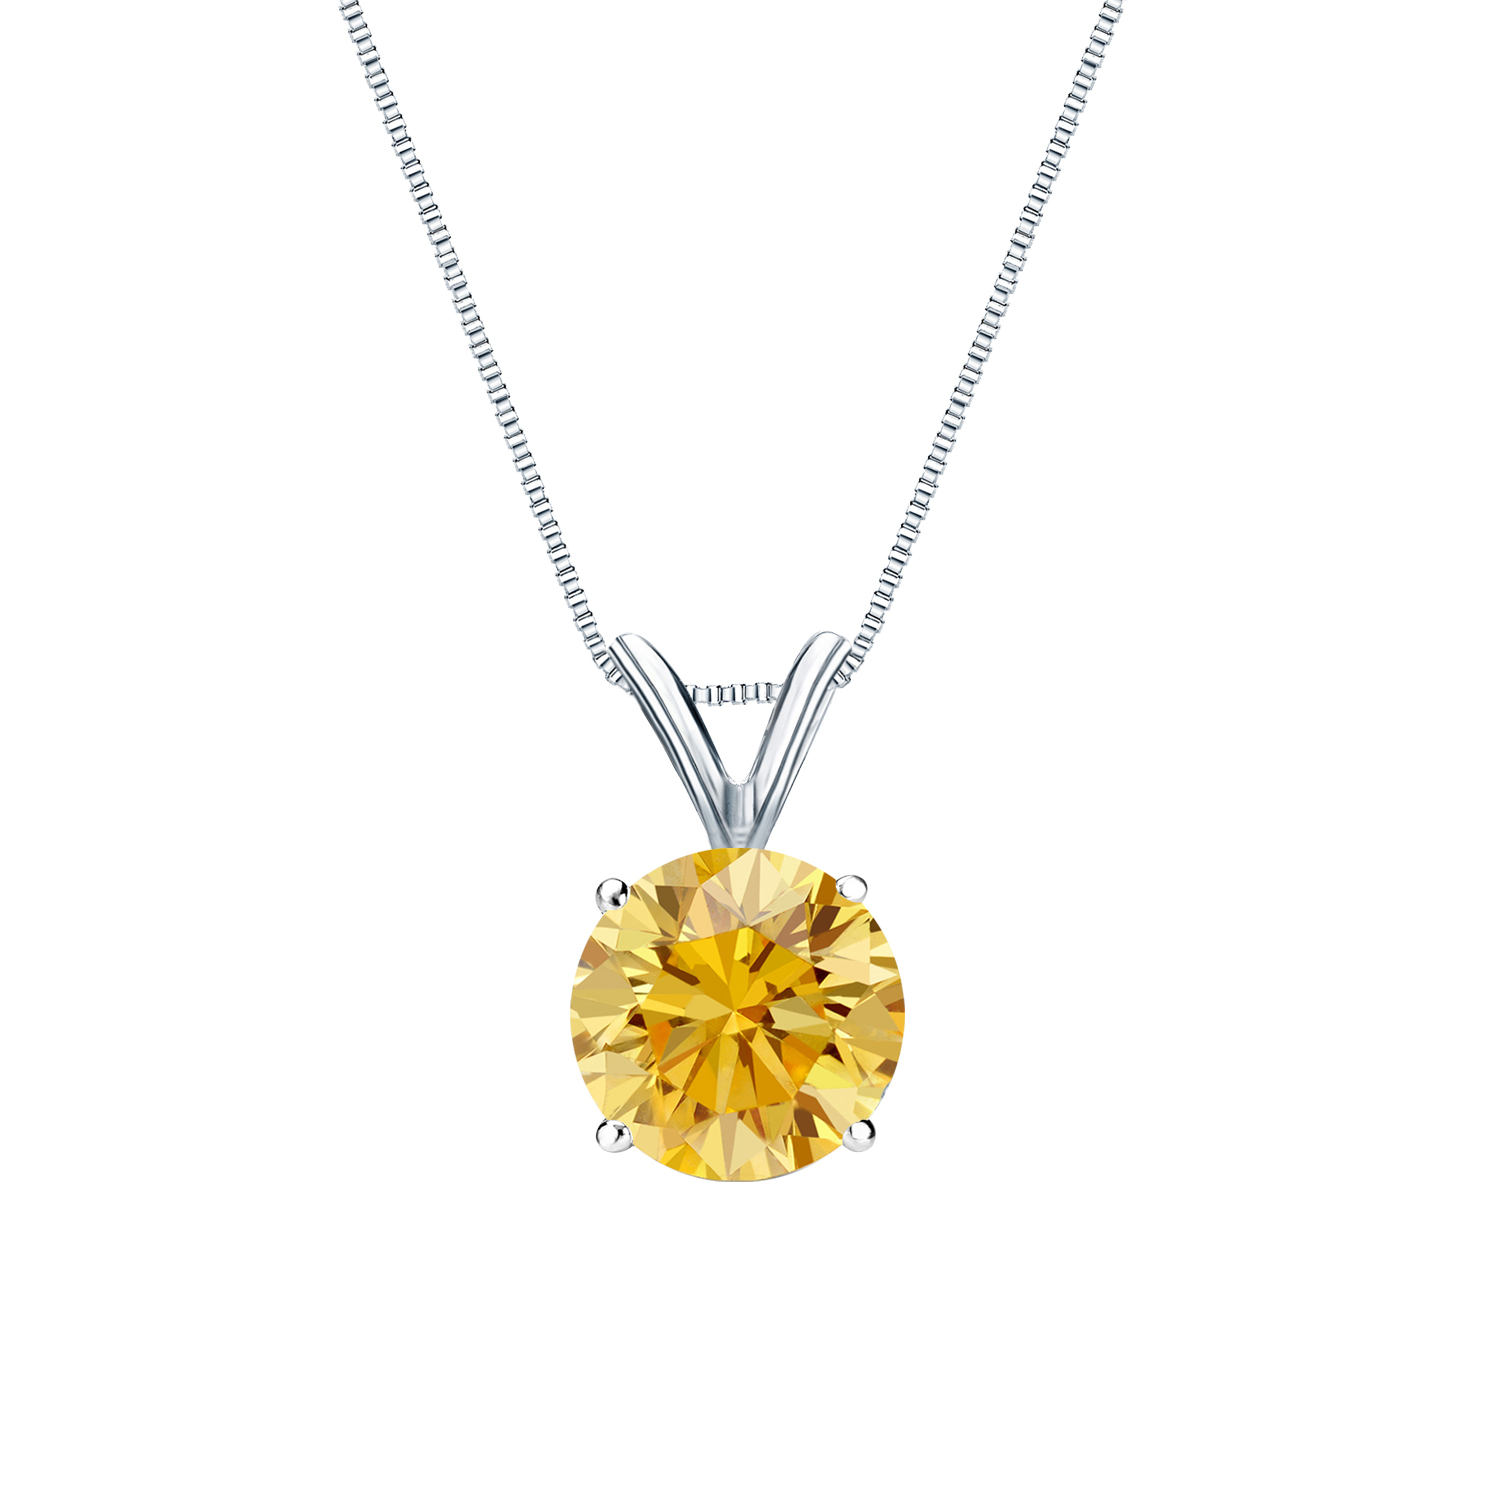 Certified 0.50 ct. tw. Round Yellow Diamond Solitaire Pendant in 14k White Gold 4-Prong Basket (Yellow, SI1-SI2)